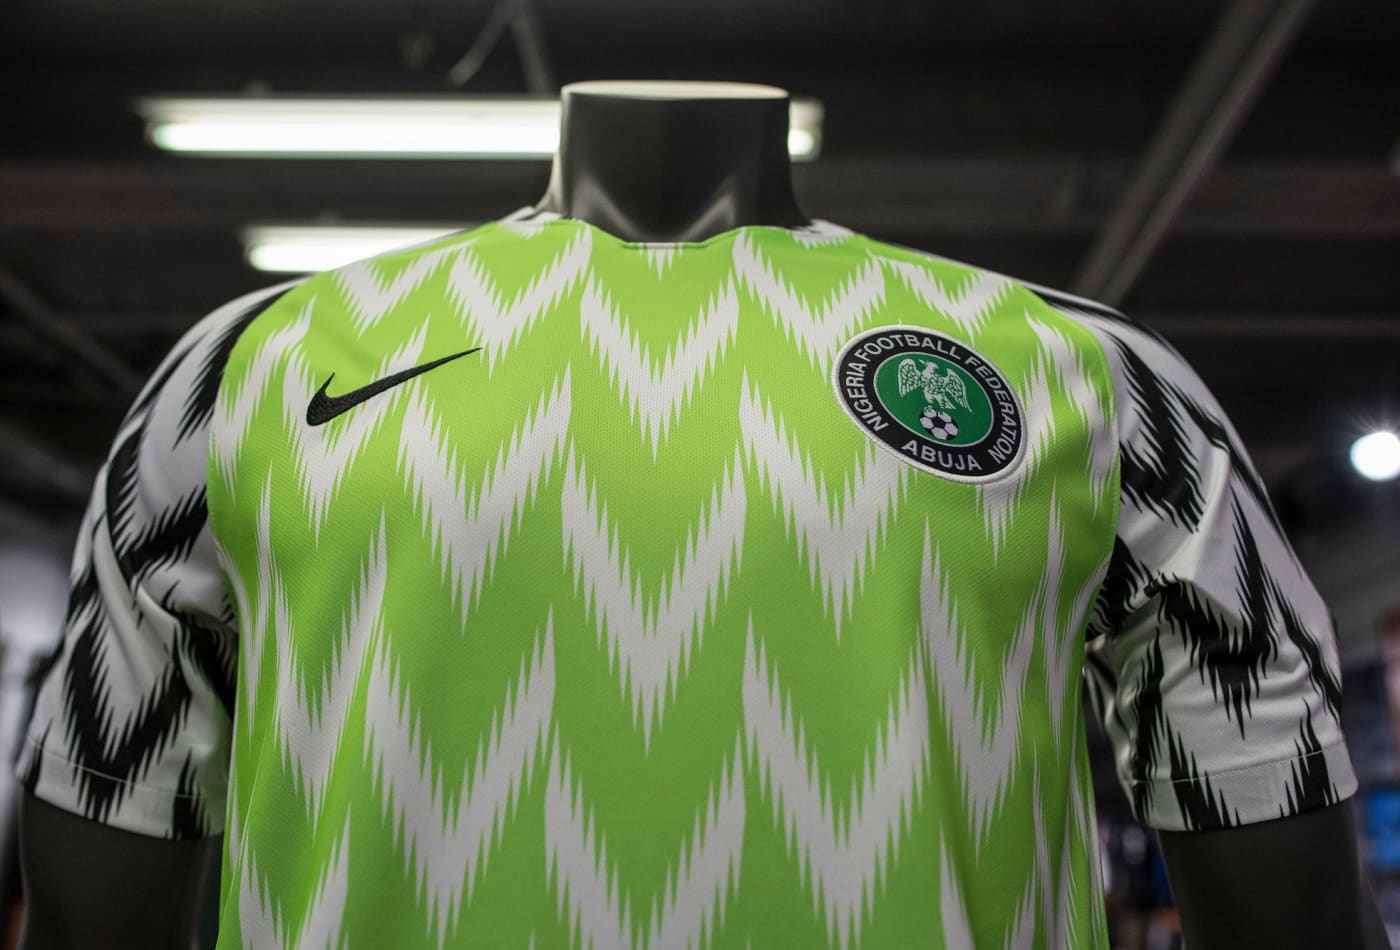 dbc7ebd91 The Nigeria Super Eagles jersey for the 2018 World Cup in Russia has been  hugely popular